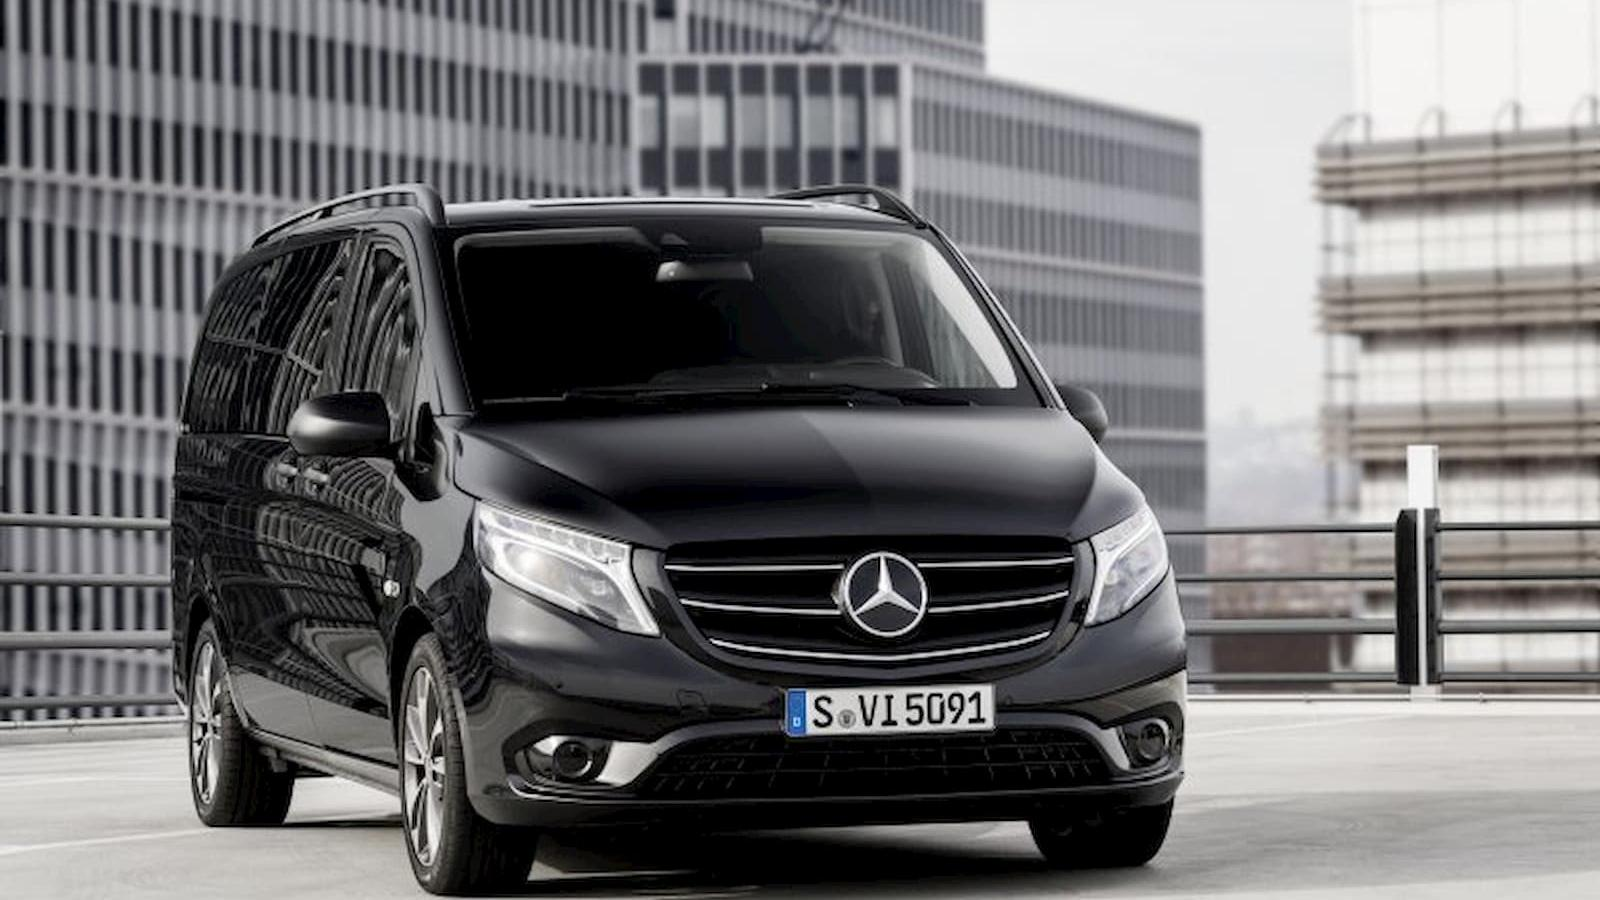 NBK Automobiles brings multipurpose Mercedes-Benz Vito Tourer to Qatar